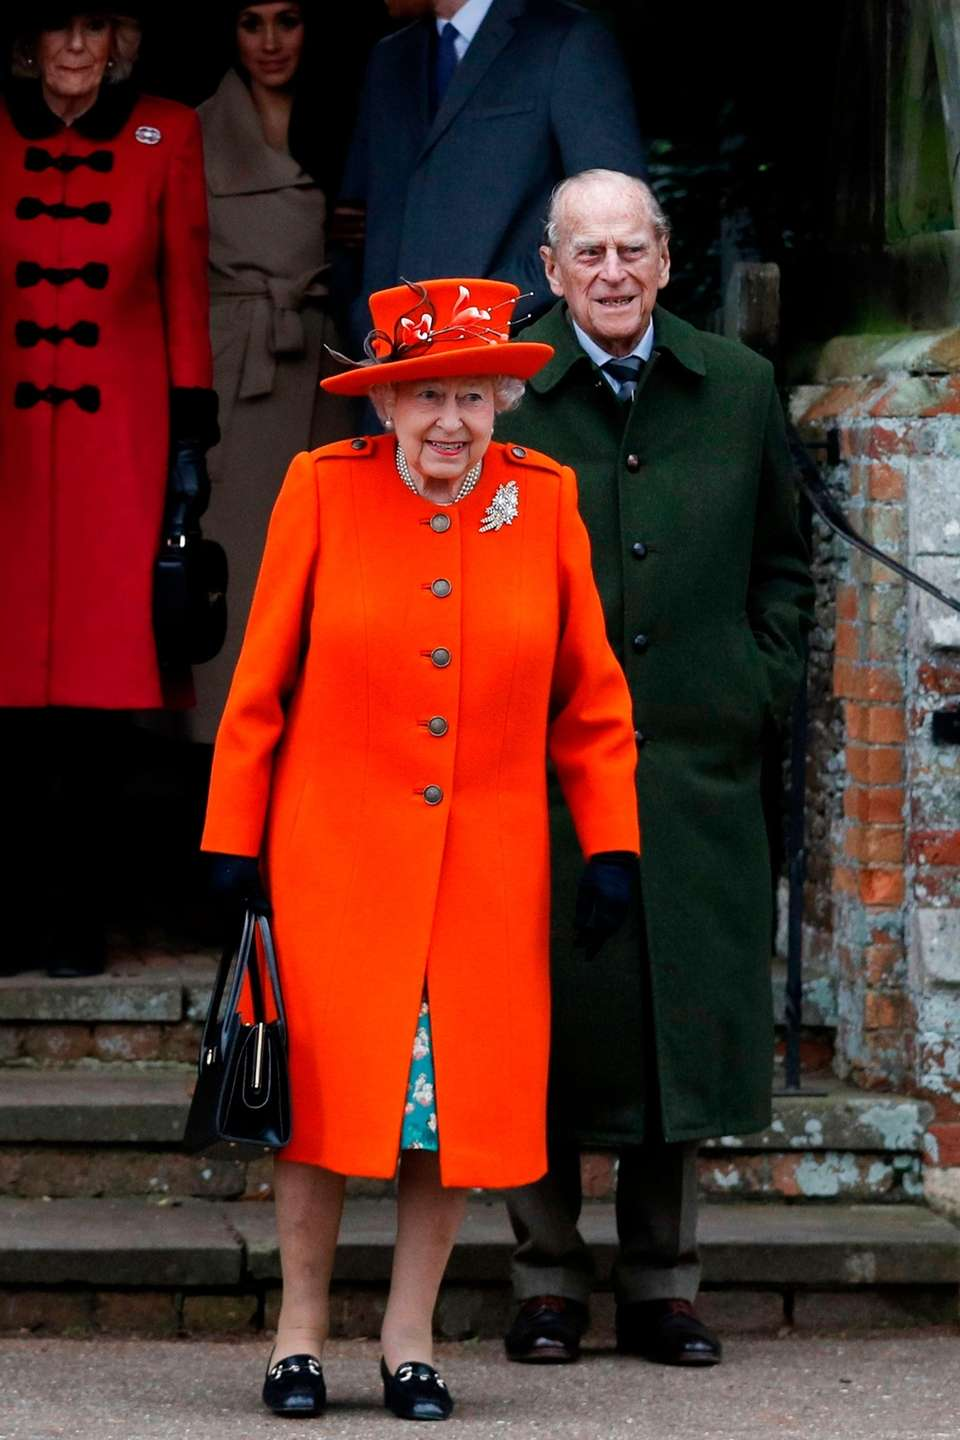 Queen Elizabeth II and Prince Philip leave Christmas